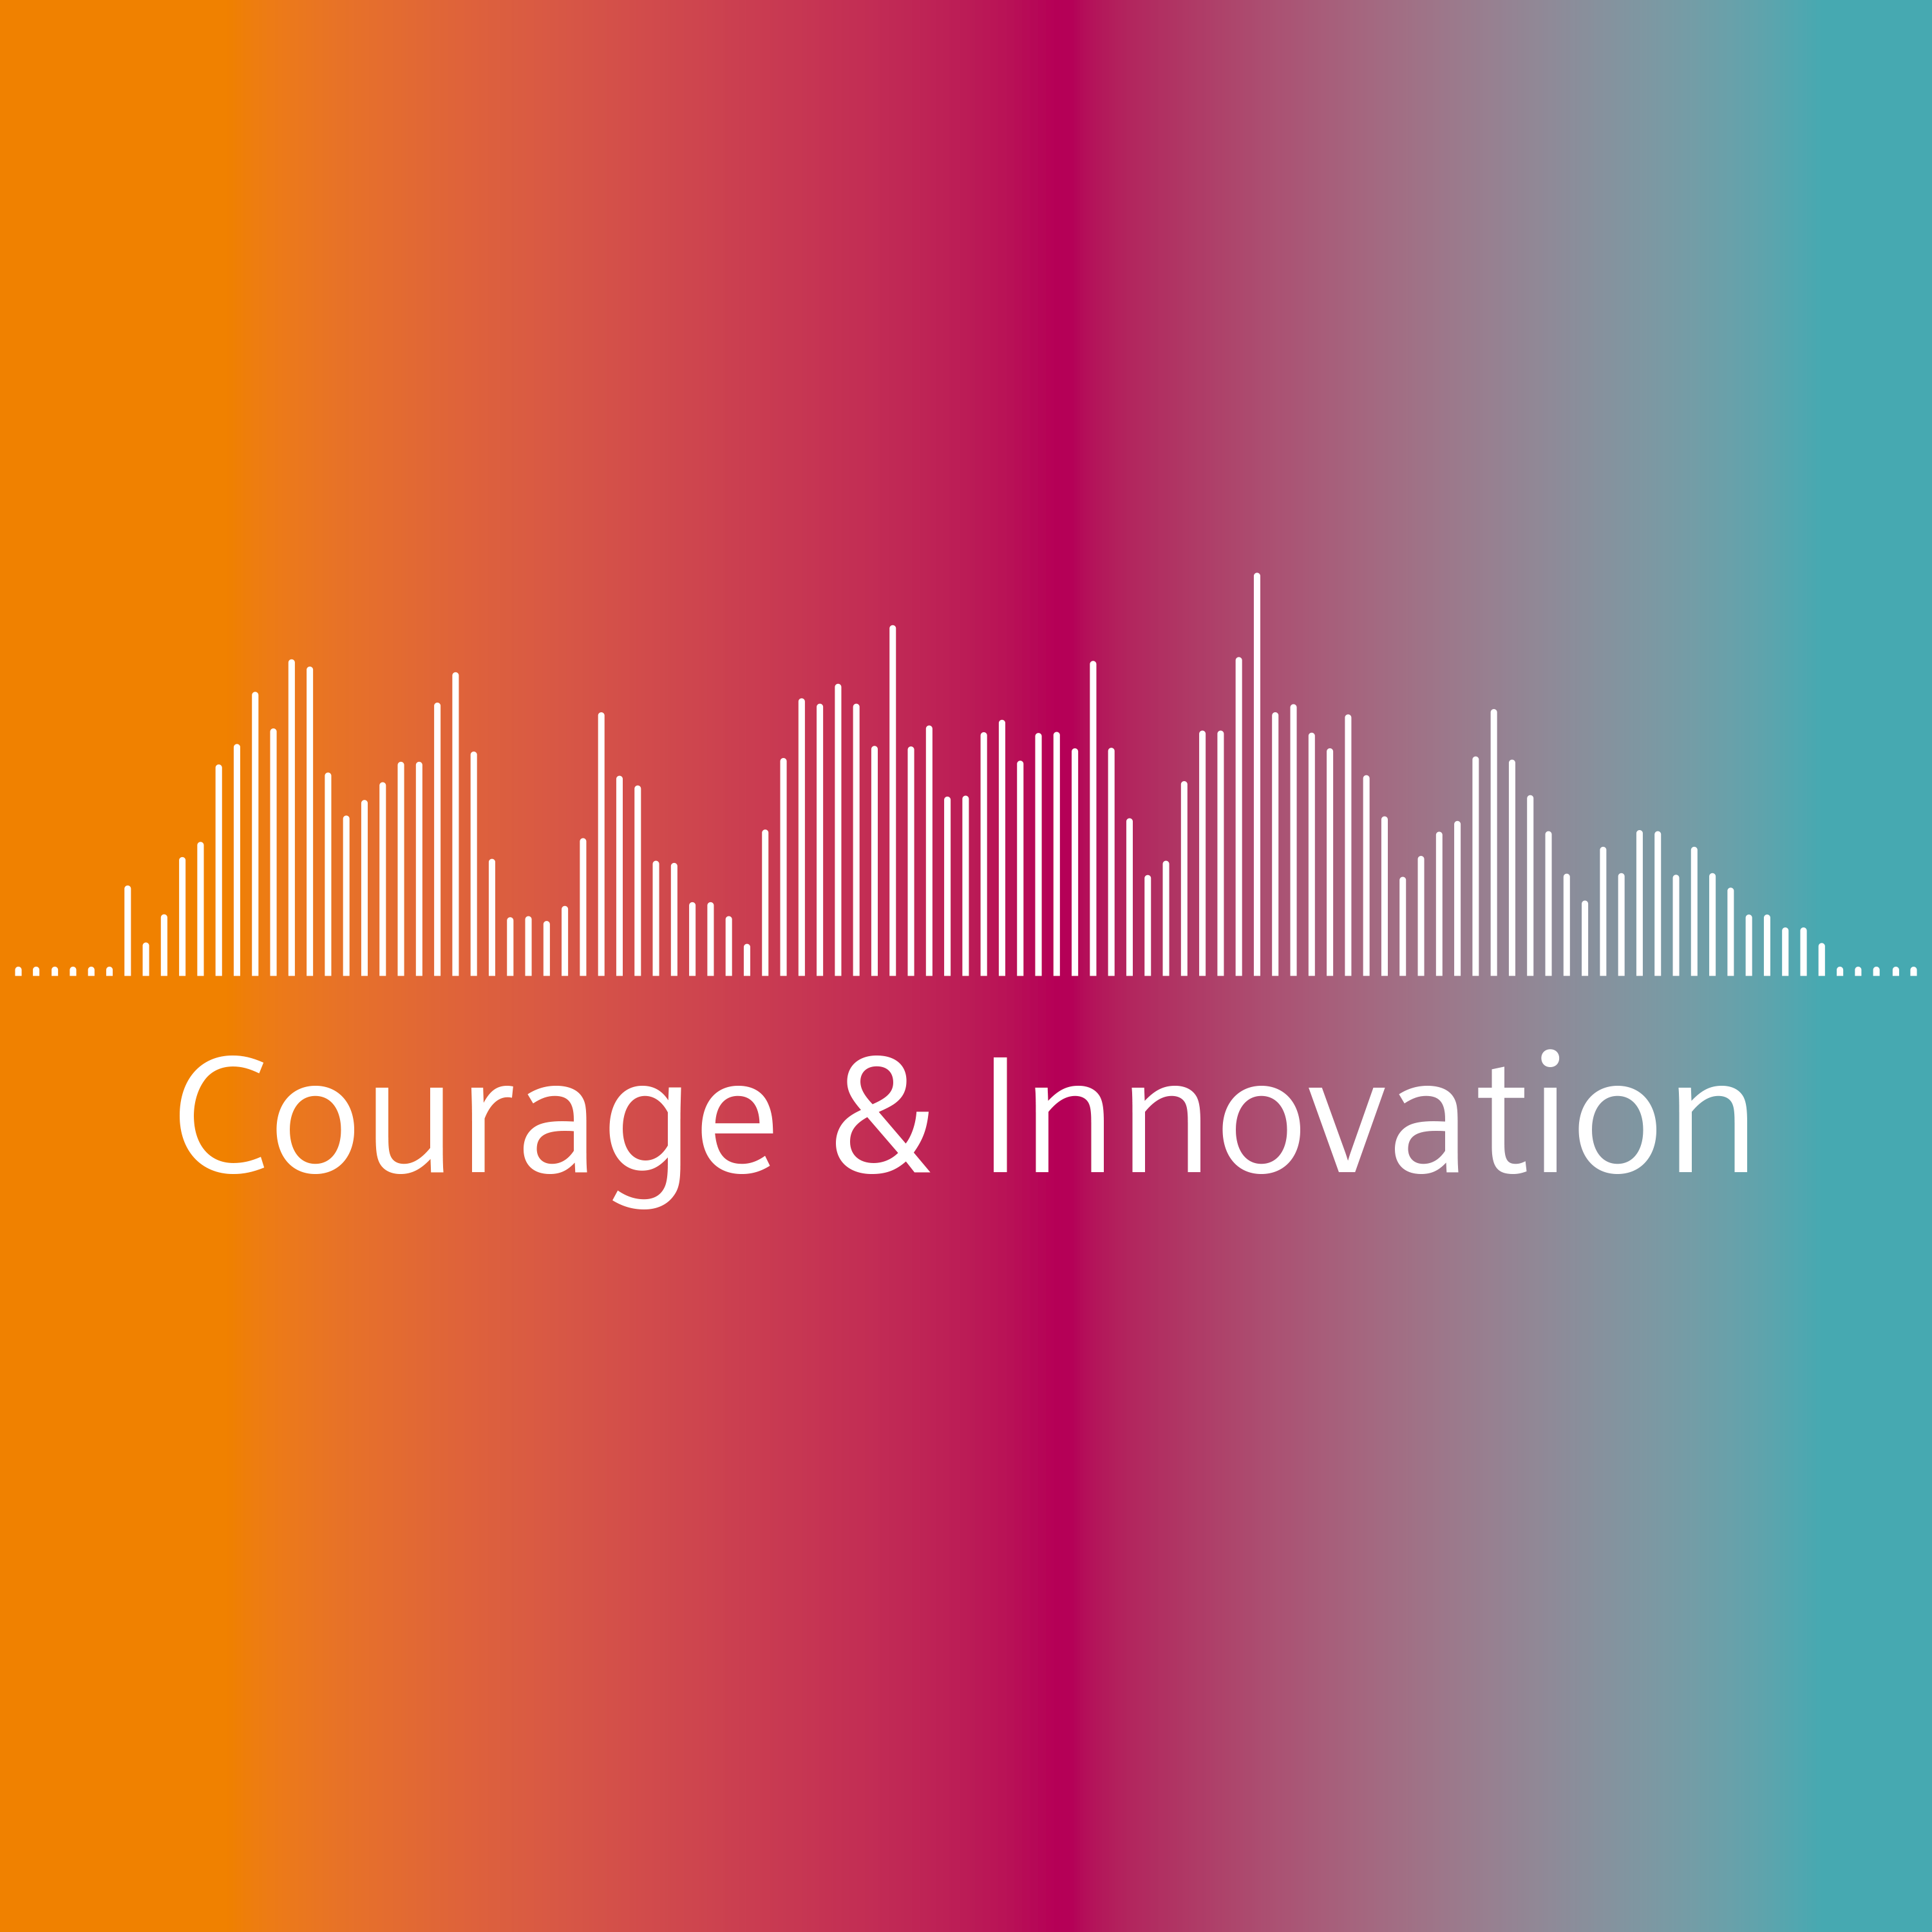 Courage & Innovation